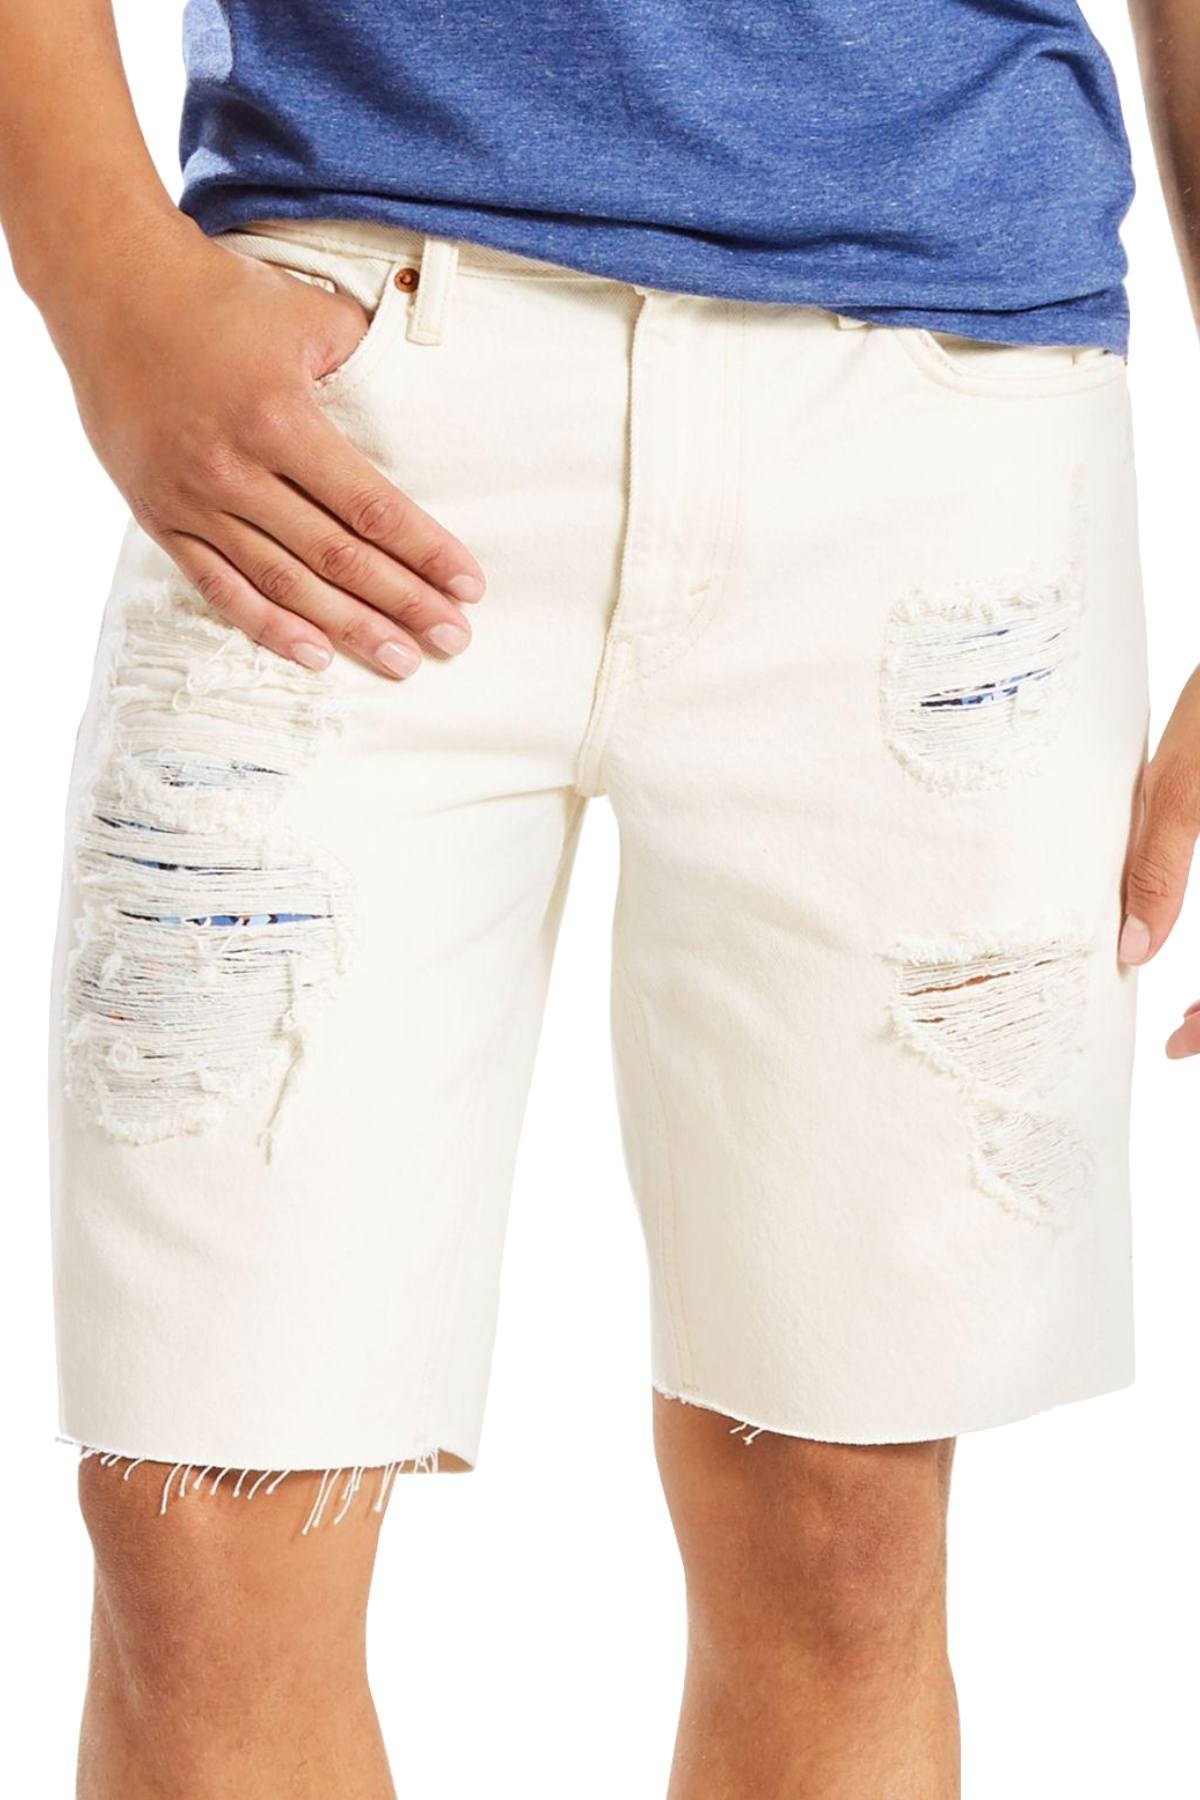 215a044a Levi's Popular-White 511™ Slim-Fit Cut-Off Ripped Jean Short ...